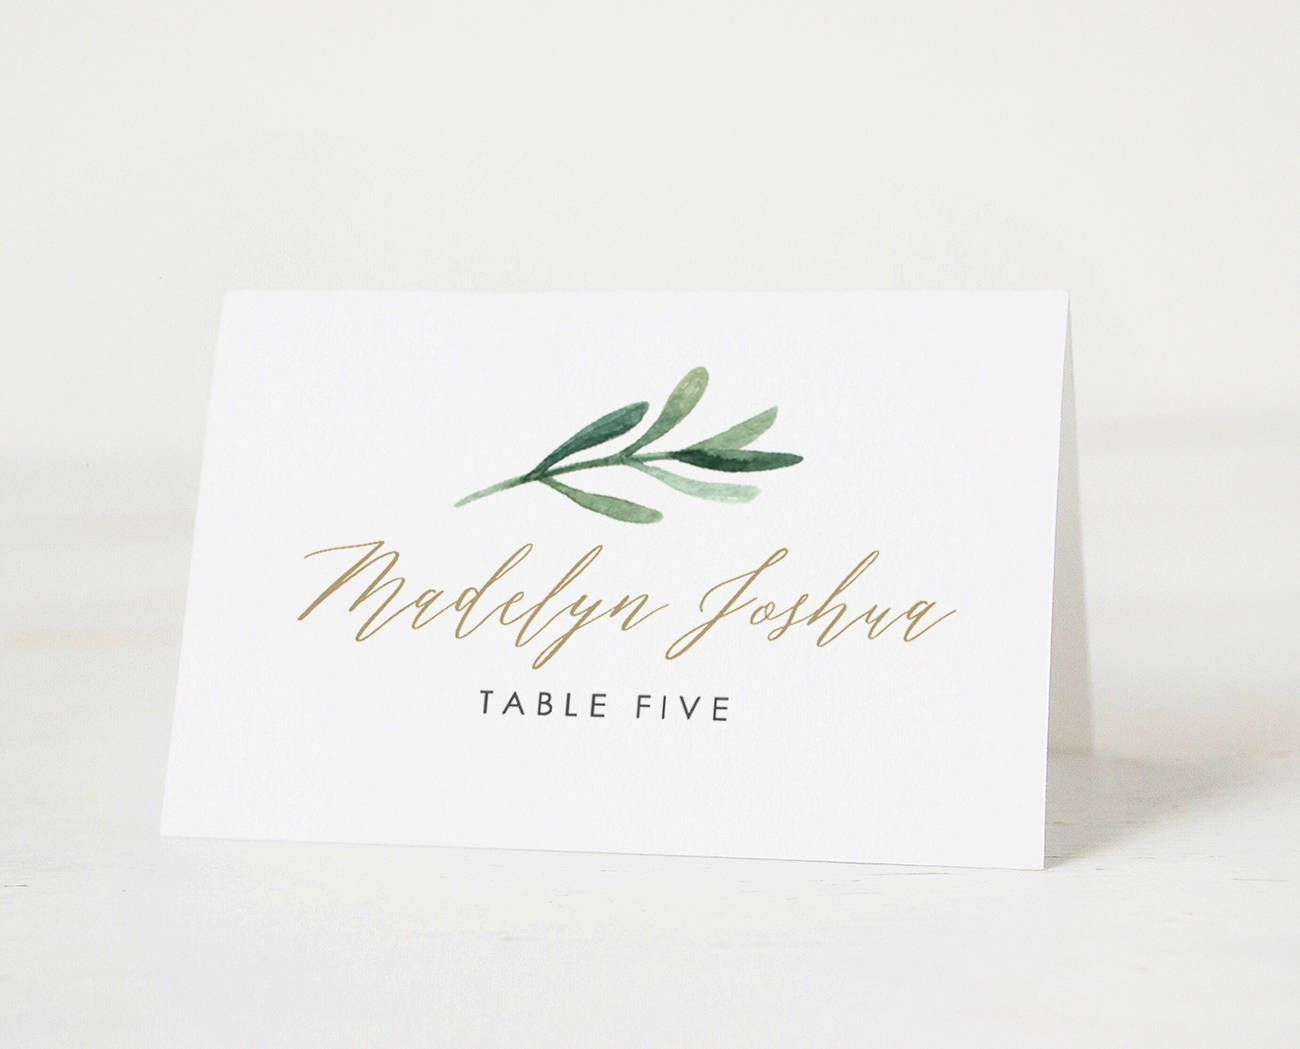 002 Unforgettable Free Place Card Template Word Sample  Tent IdFull